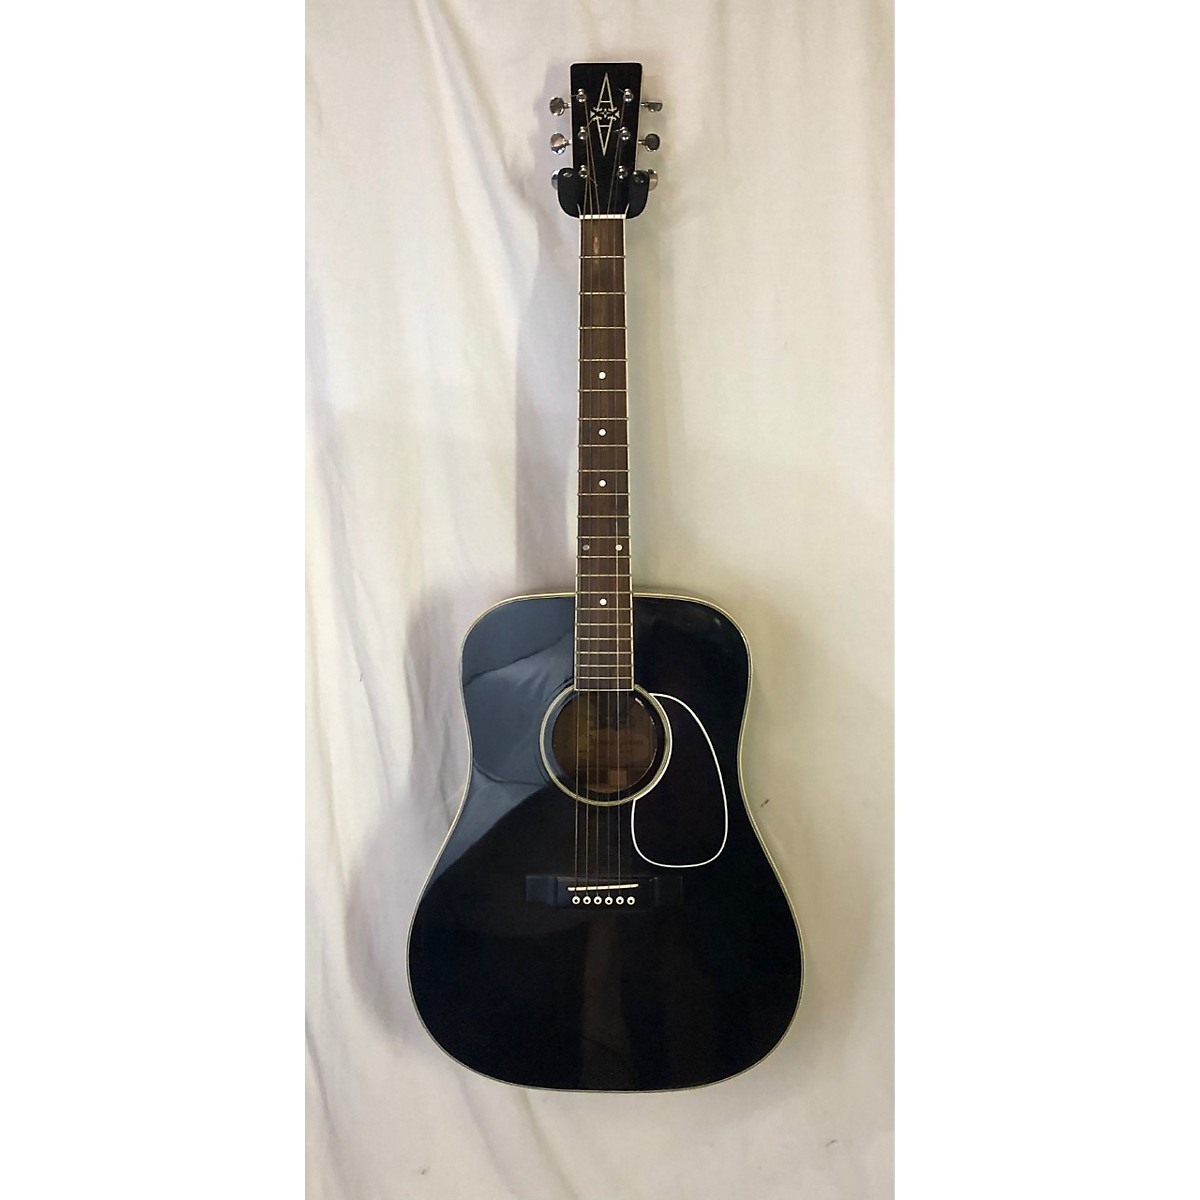 Alvarez 1975 5013 Acoustic Guitar